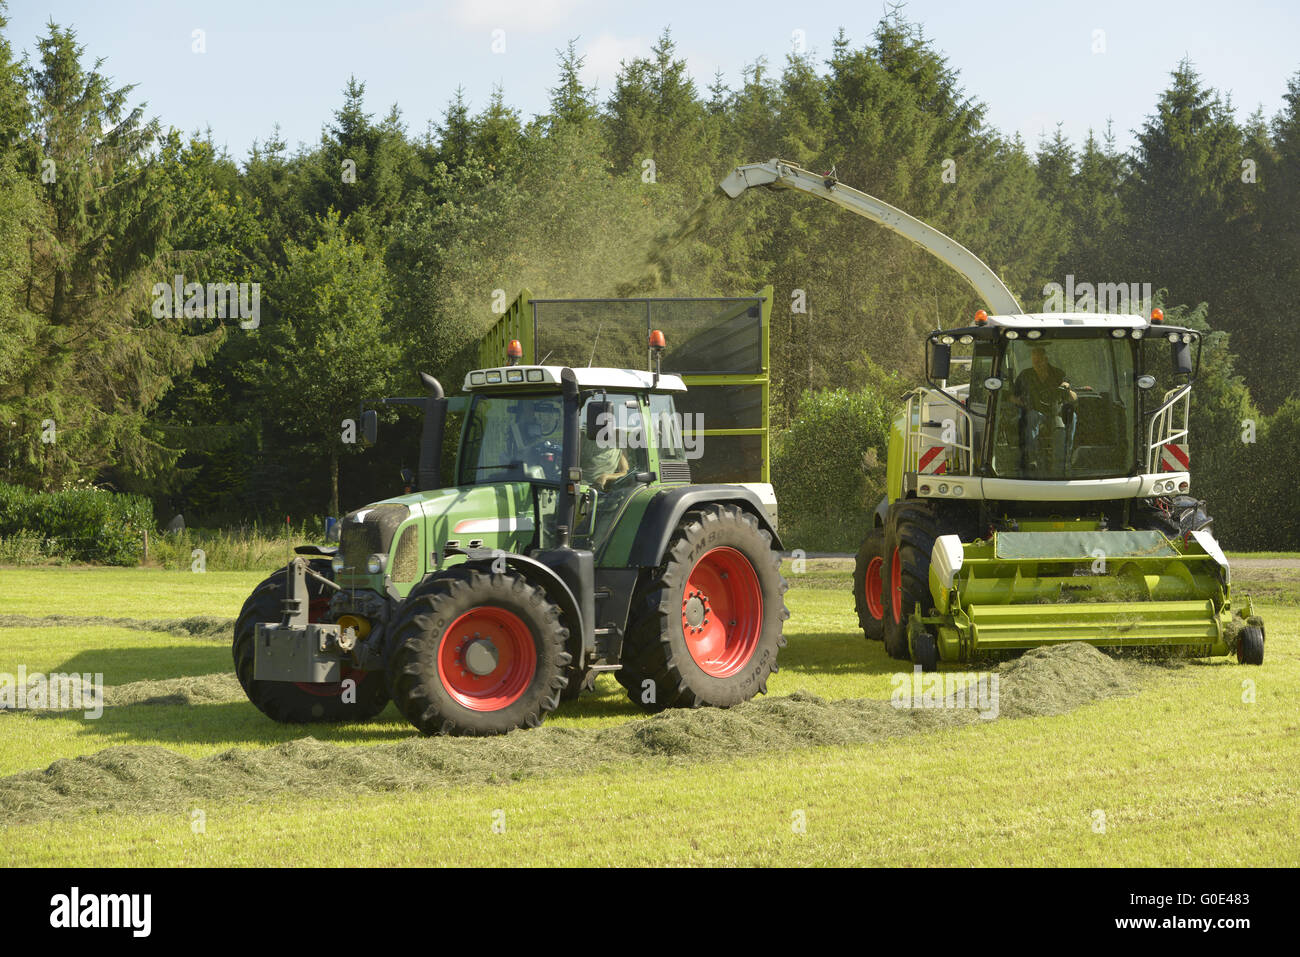 Agriculture, forage harvester and transport grass - Stock Image